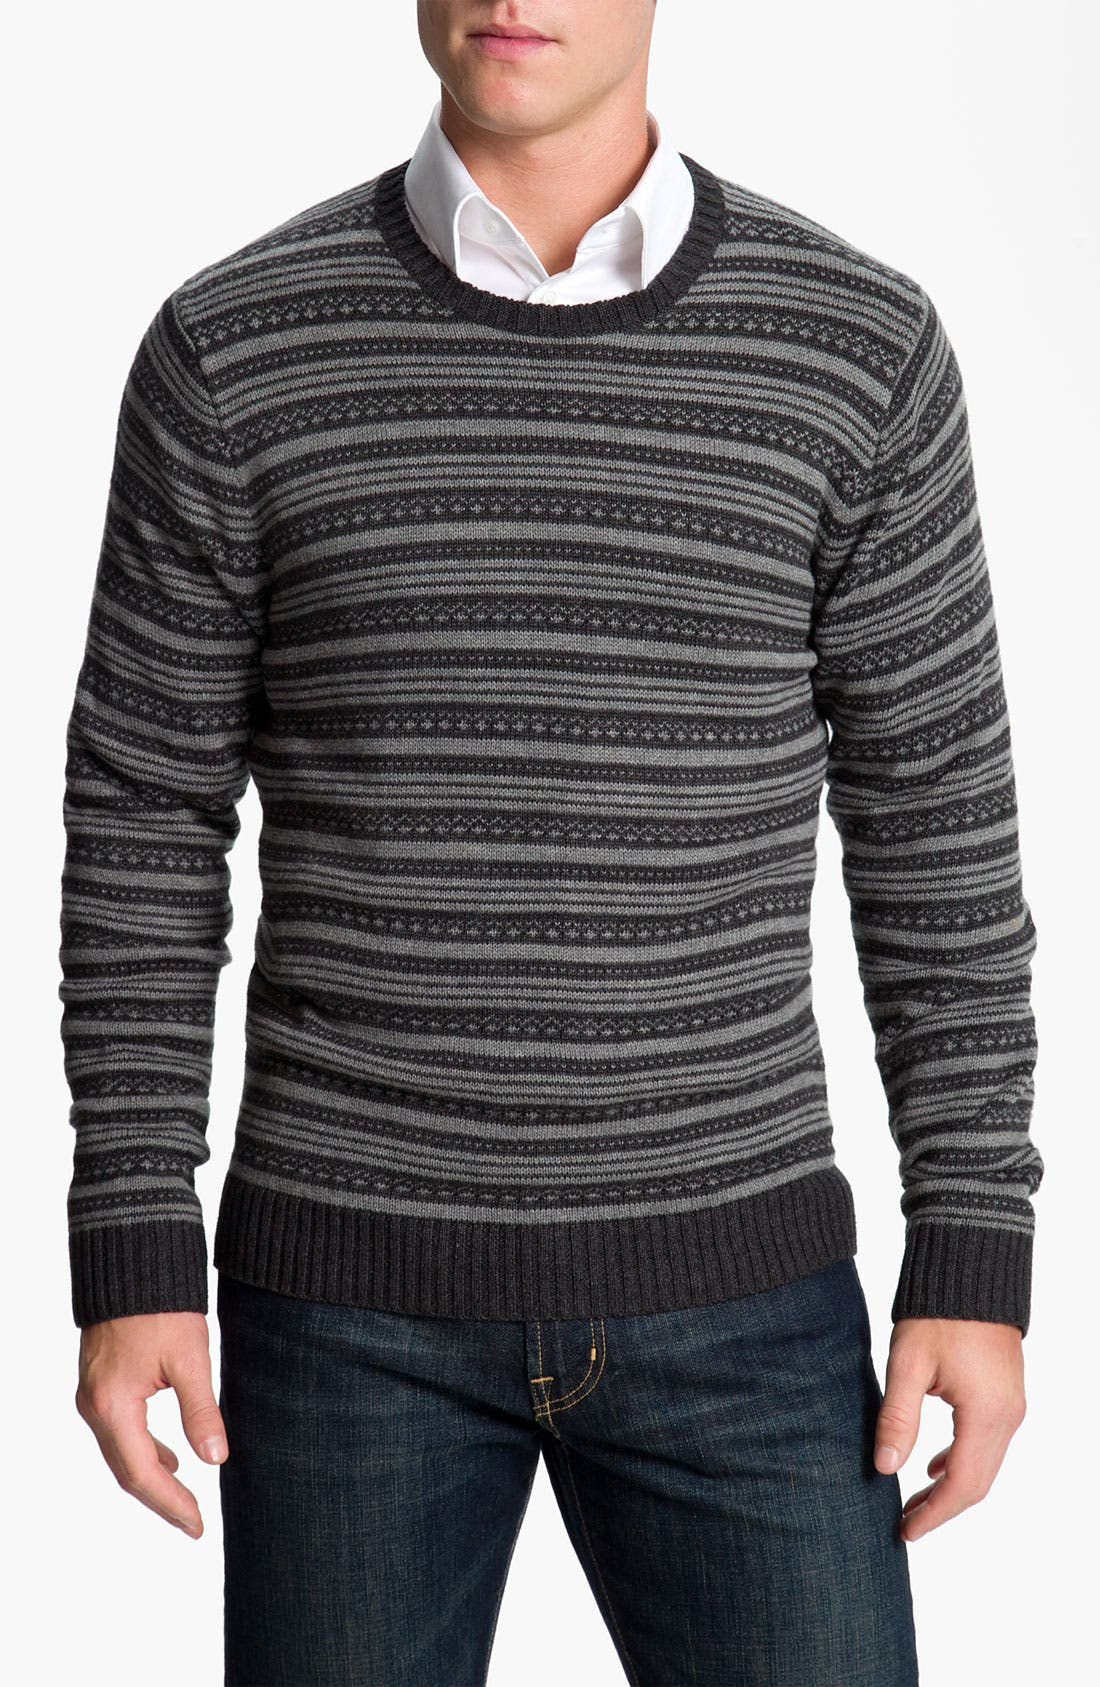 Alternate Image 1 Selected - Wallin & Bros. Fair Isle Cotton & Cashmere Sweater